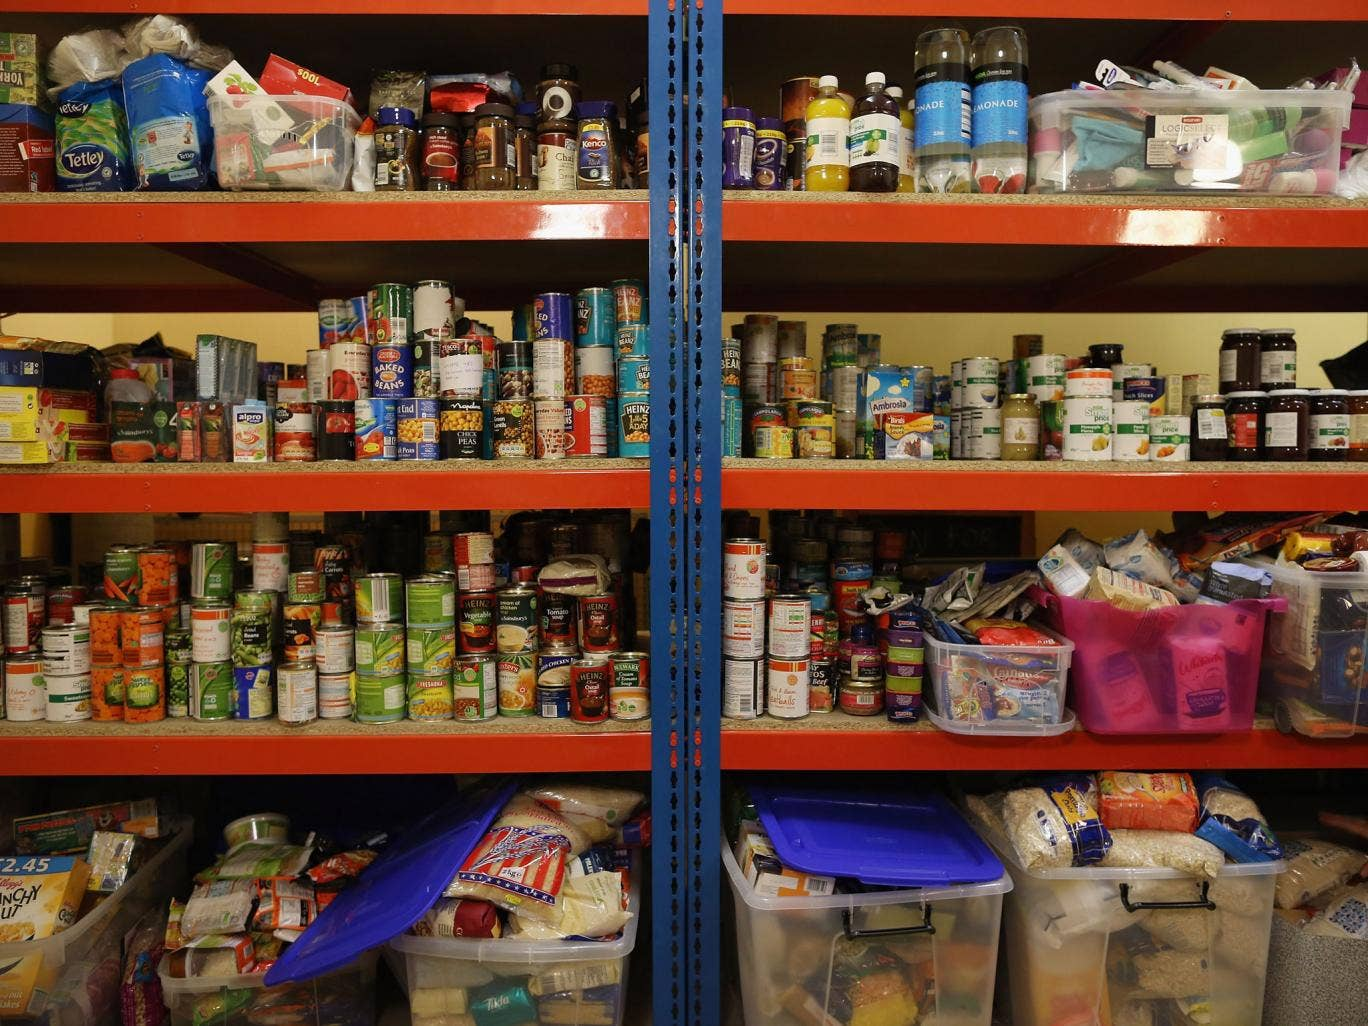 According to the Trussell Trust, the number of people who need food banks like this one has risen by 200 per cent